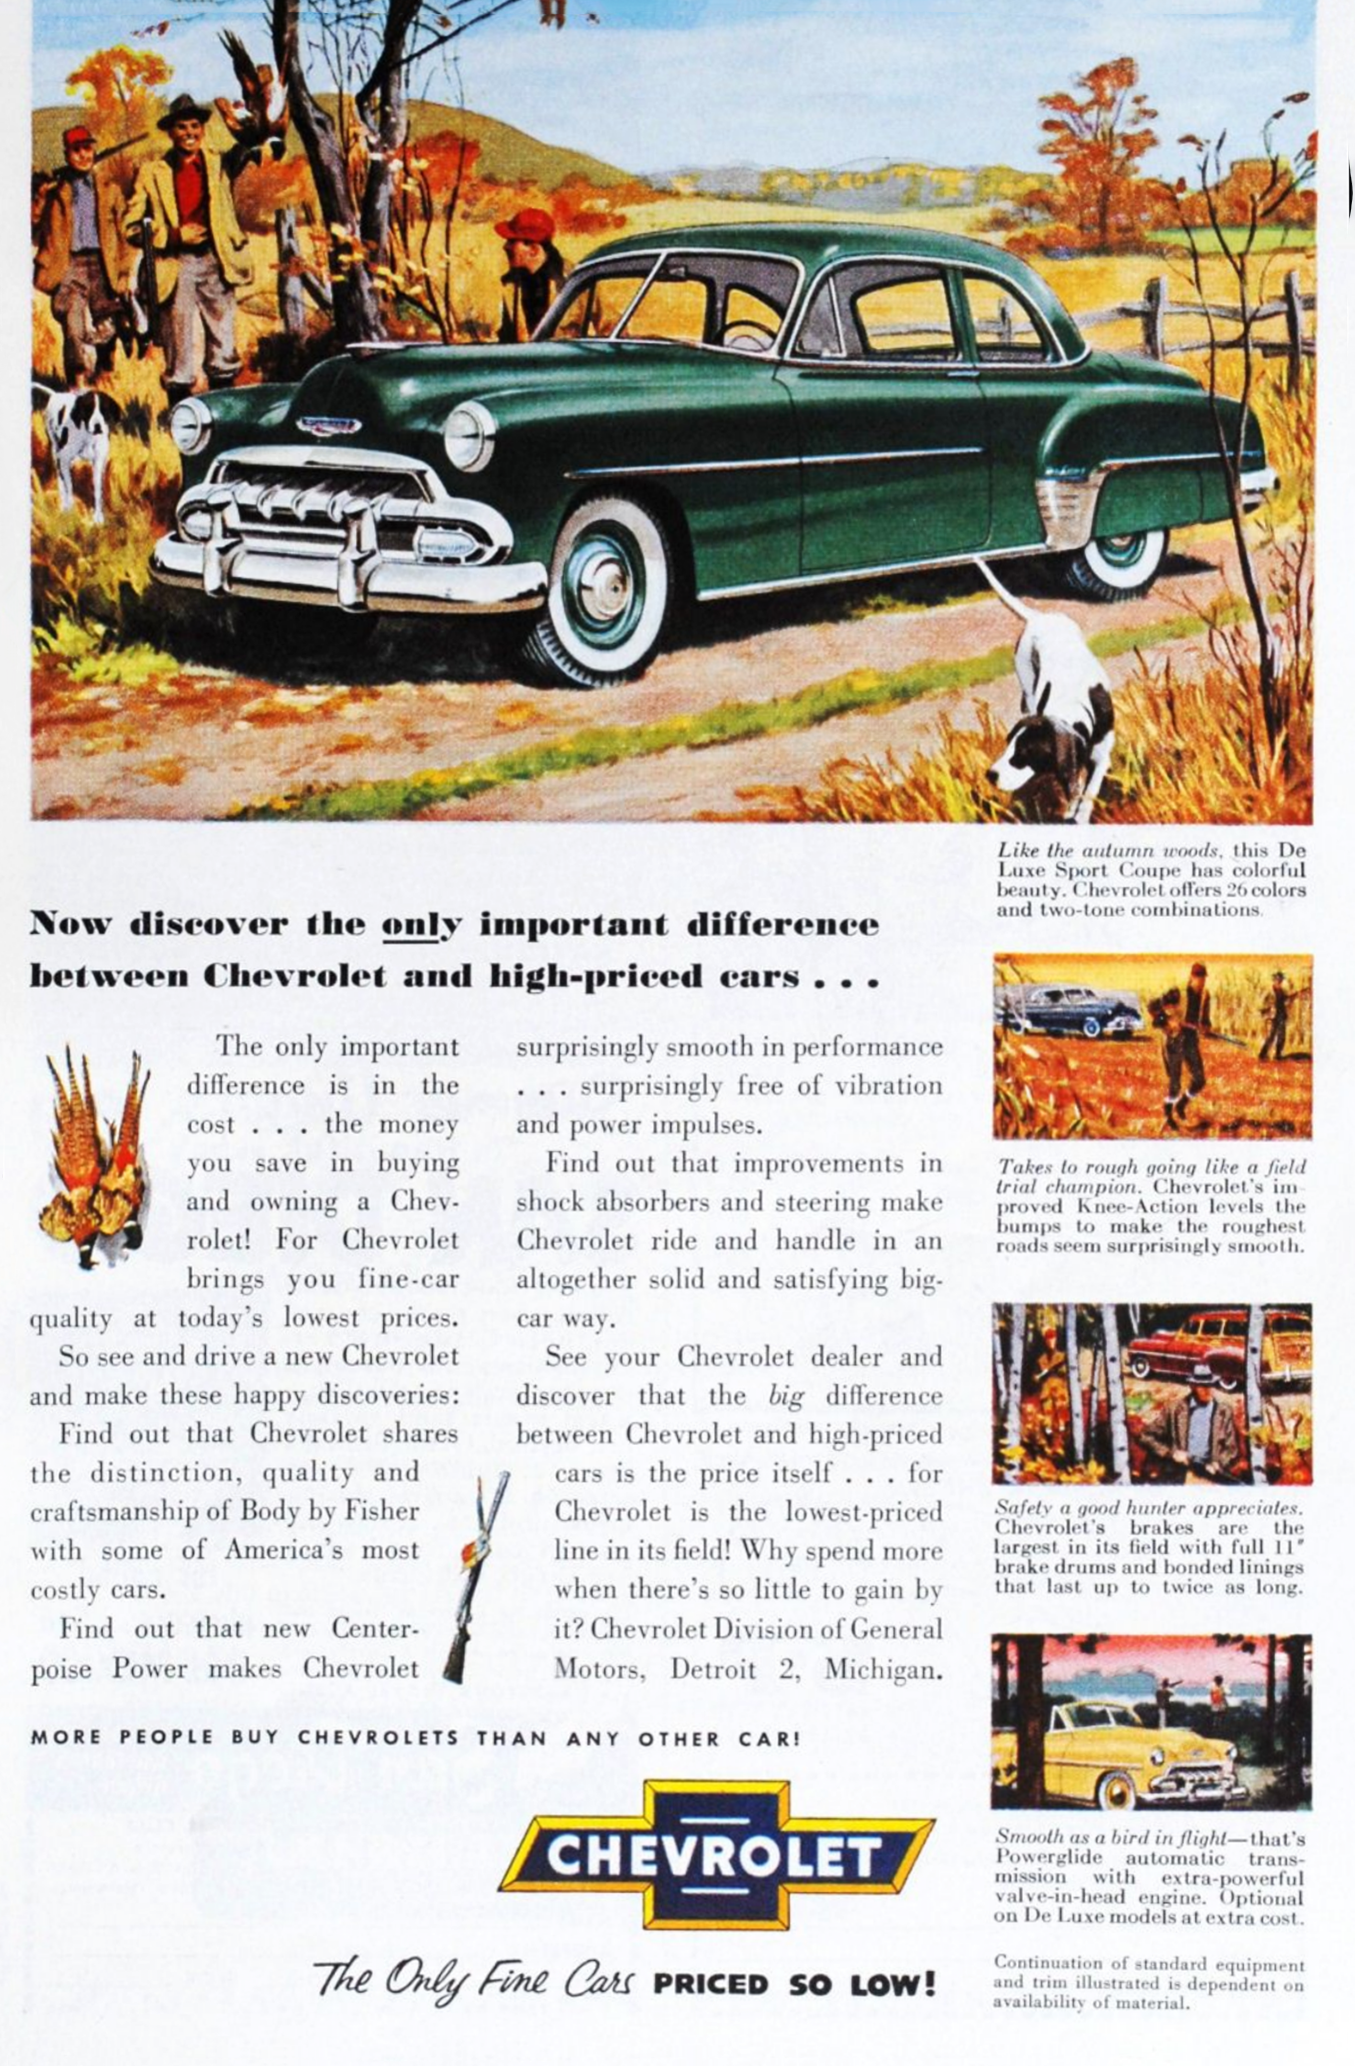 1962 Chevrolet, Autumn, Hunting